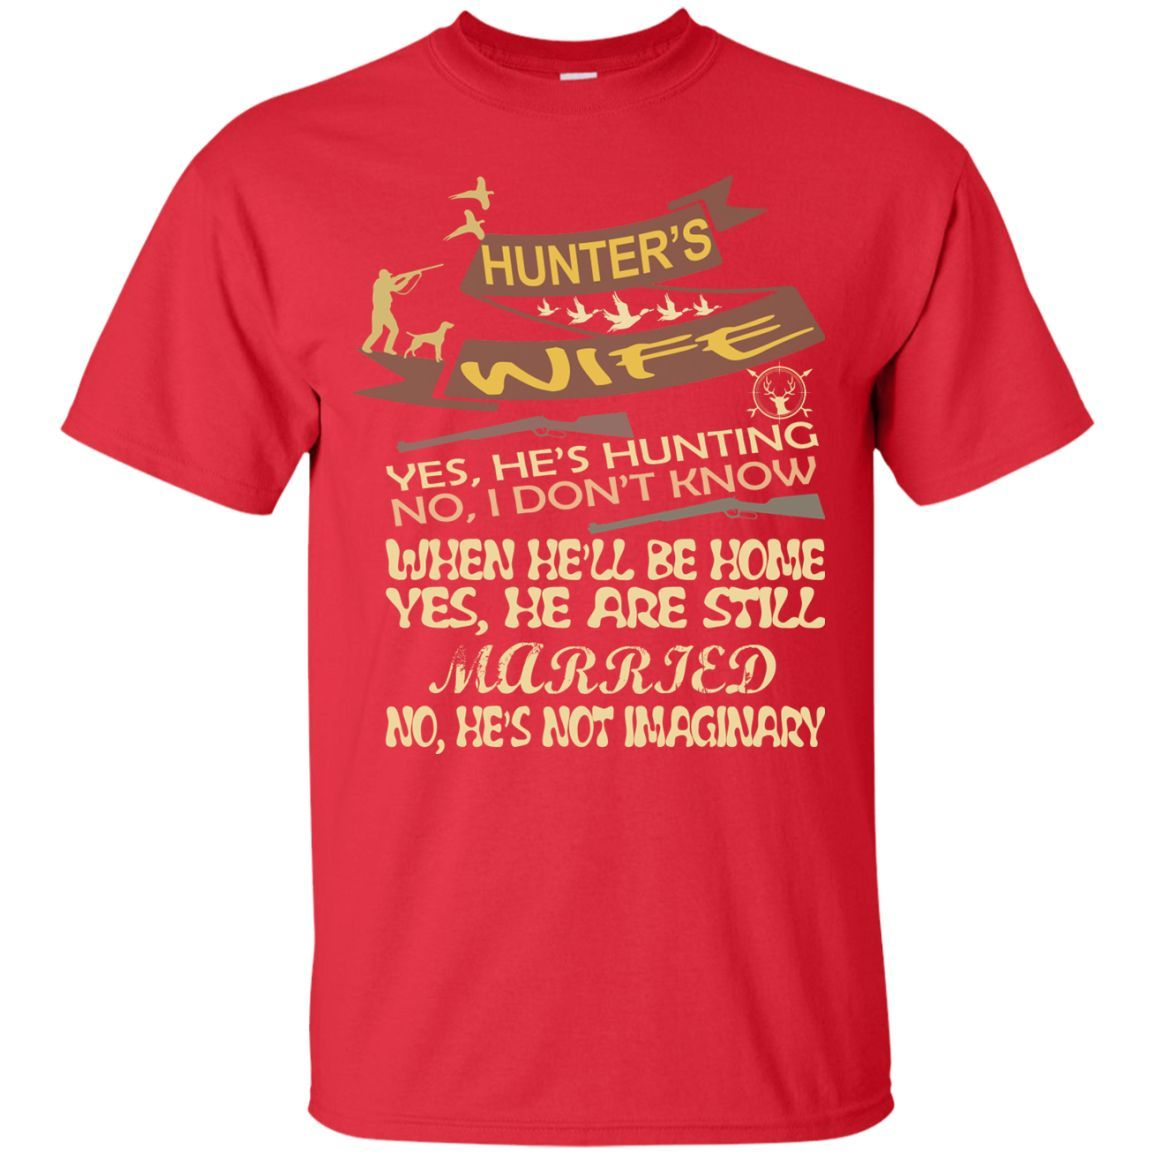 This includes hunting, fishing, nature study, hiking, going places, buying stuff, giving to others, and sharing the outdoors experience with family Hunter's Wife, Yes He's Hunting, No I Don't Know, Wh